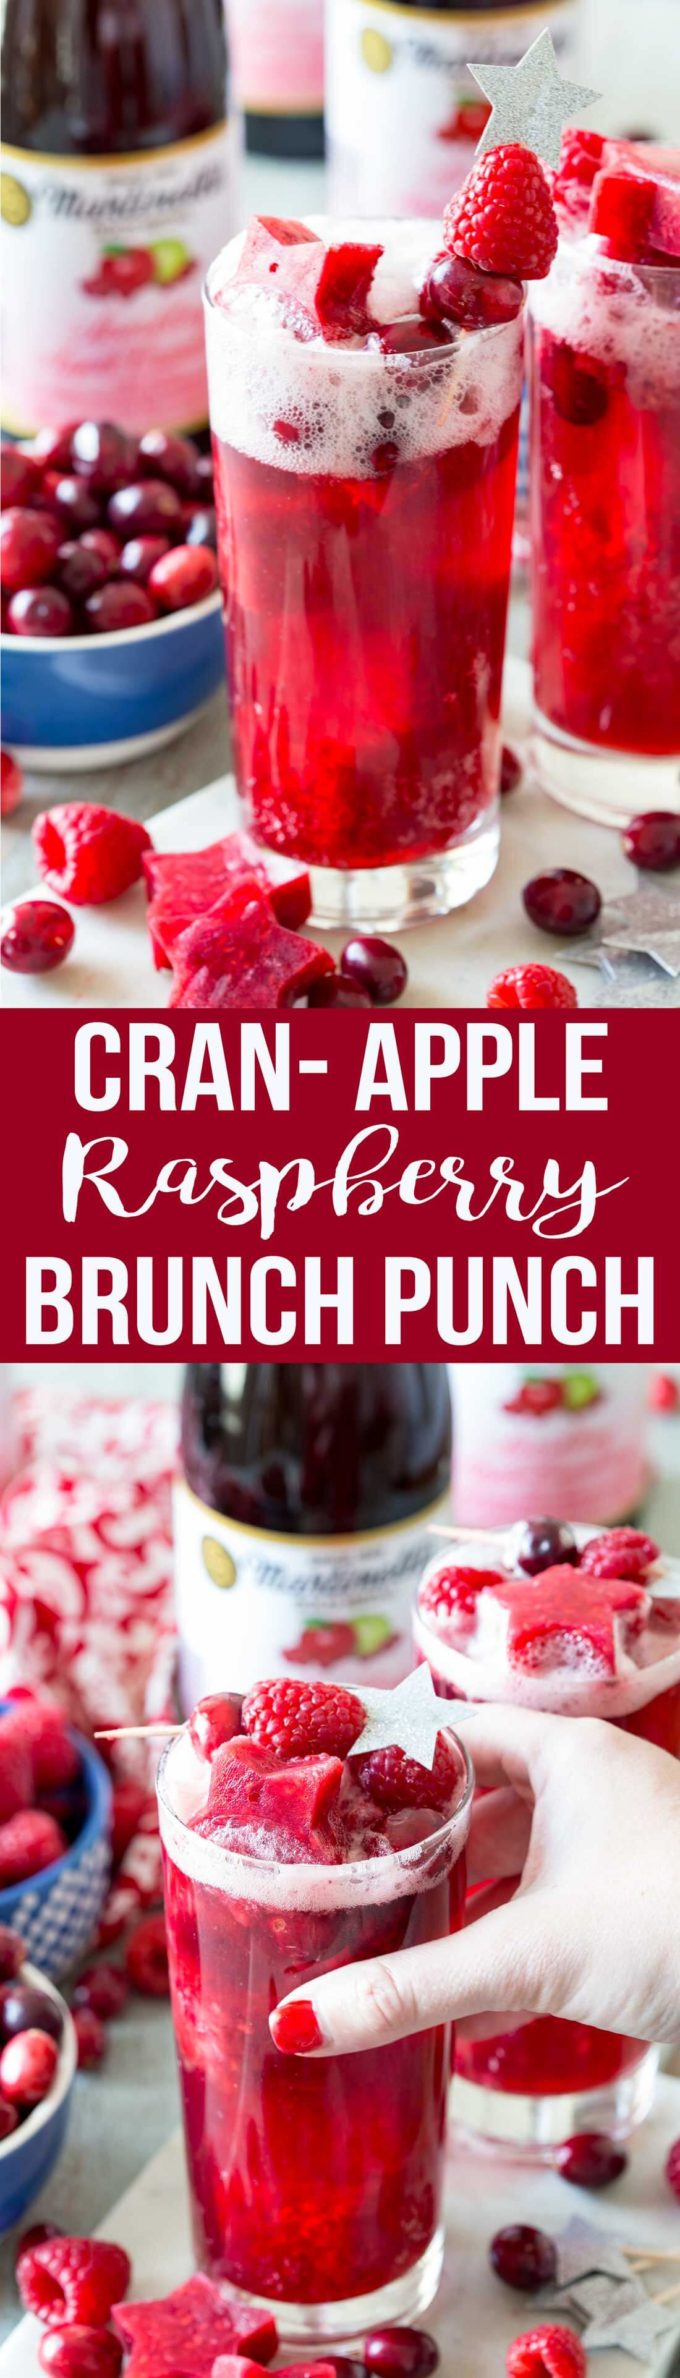 Apple Cranberry Raspberry Sparkling Brunch Punch is so simple to make and tastes amazing